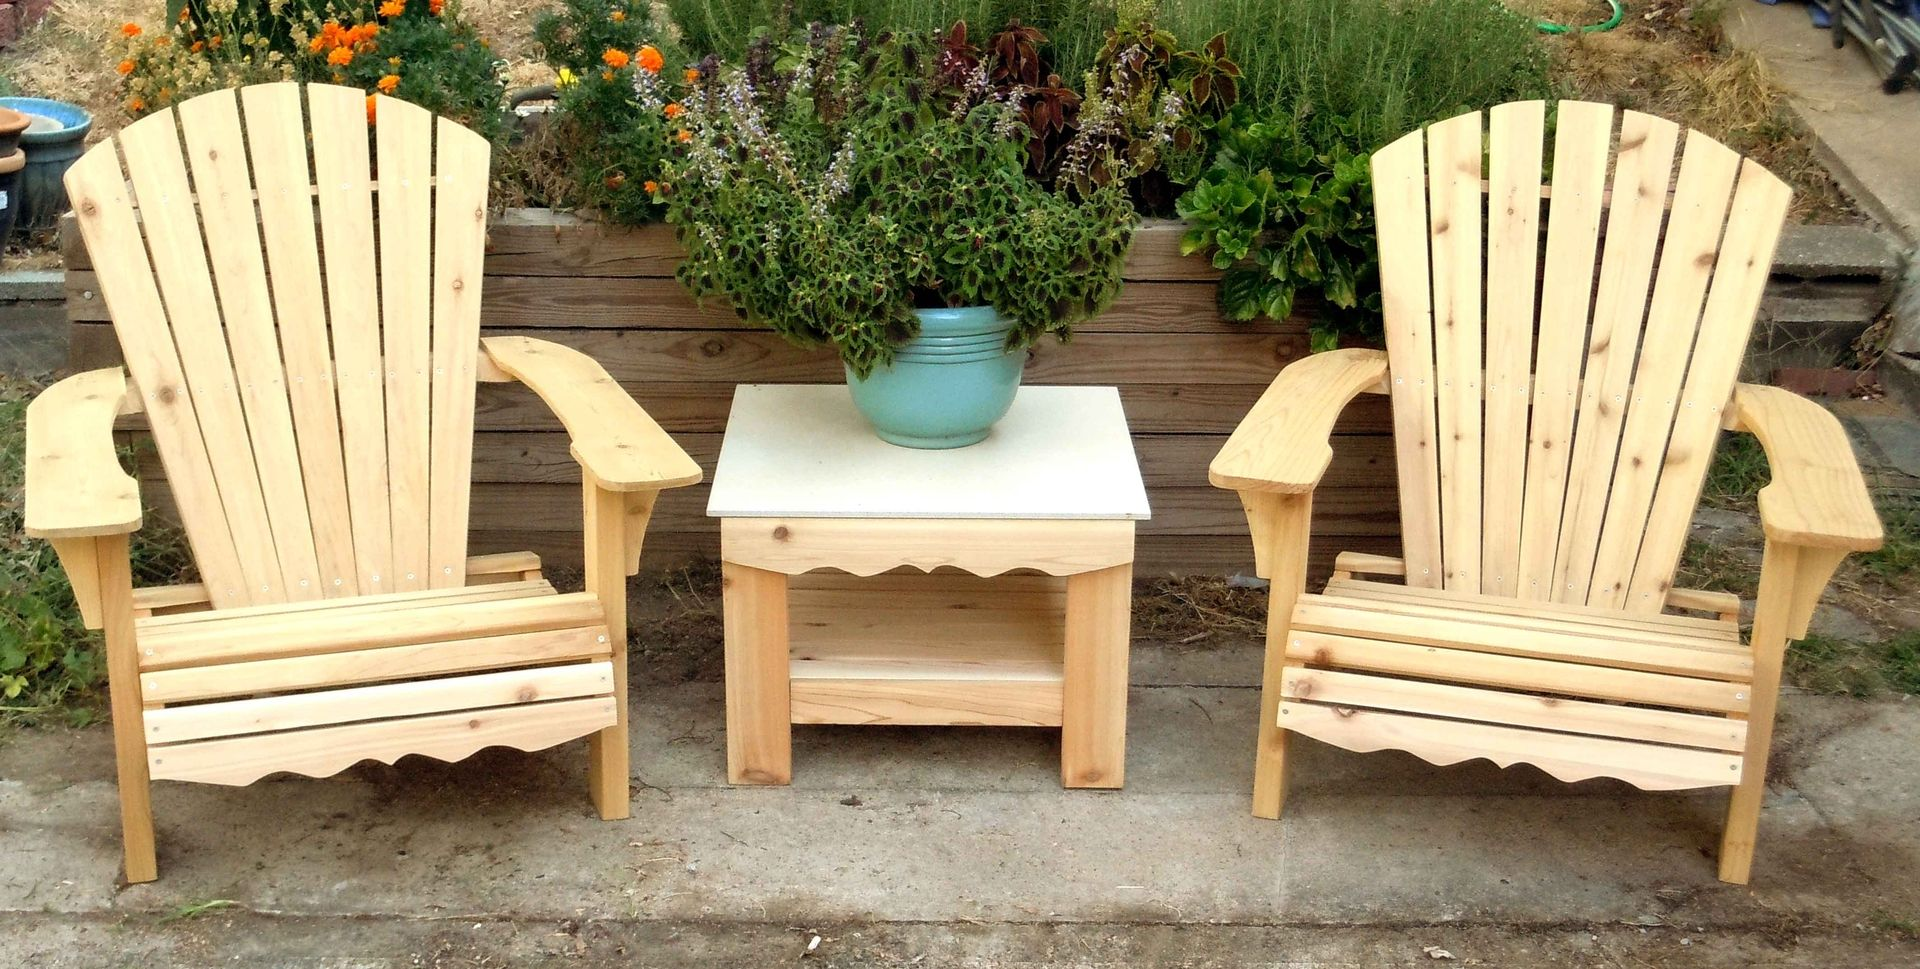 Custom Made Adirondack Chair Set With Porcelain Top Table